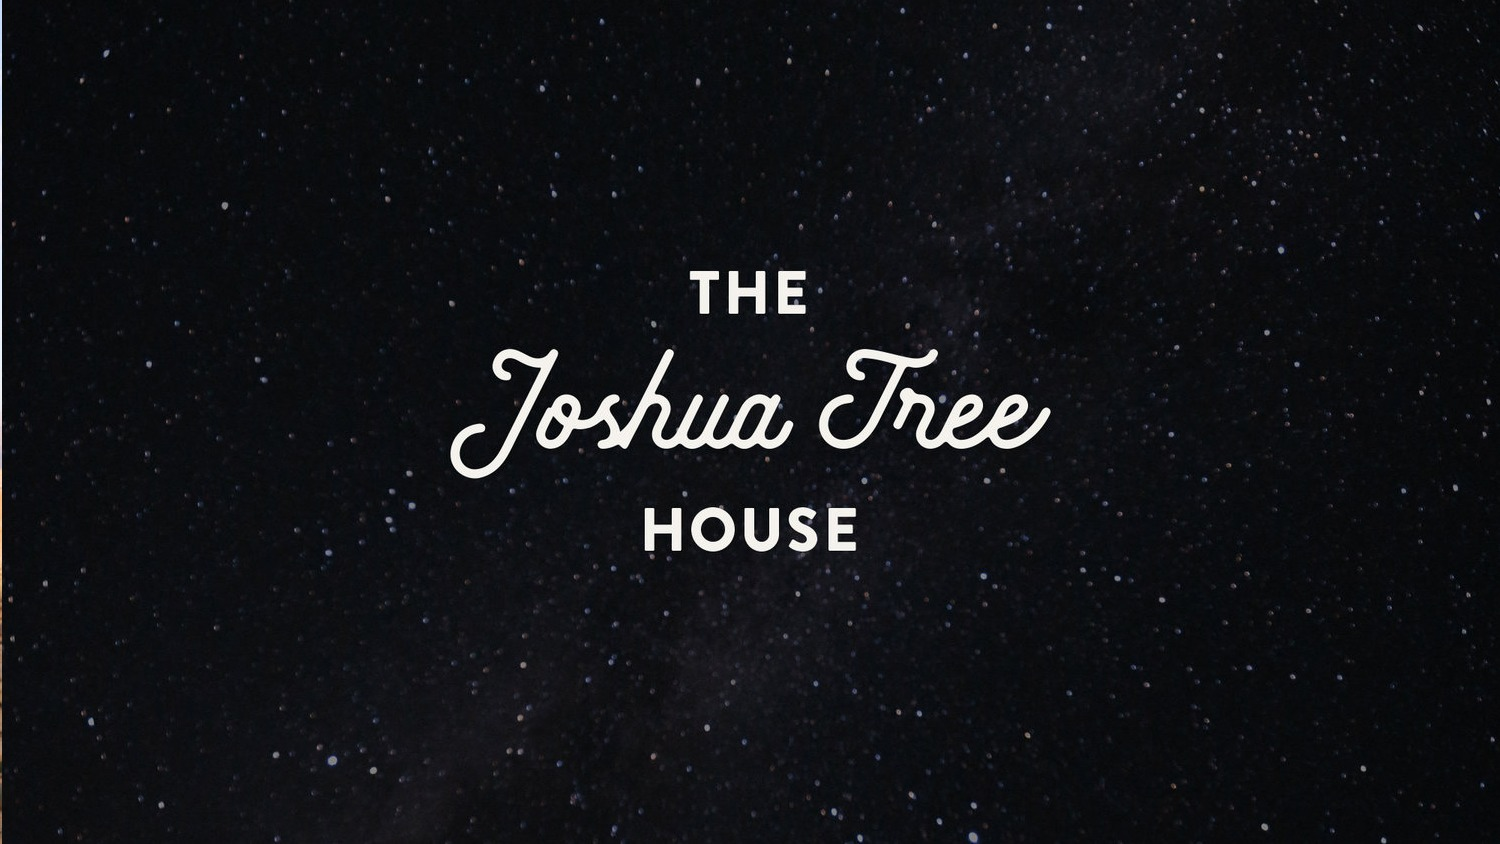 The Joshua Tree House Playlist on Spotify